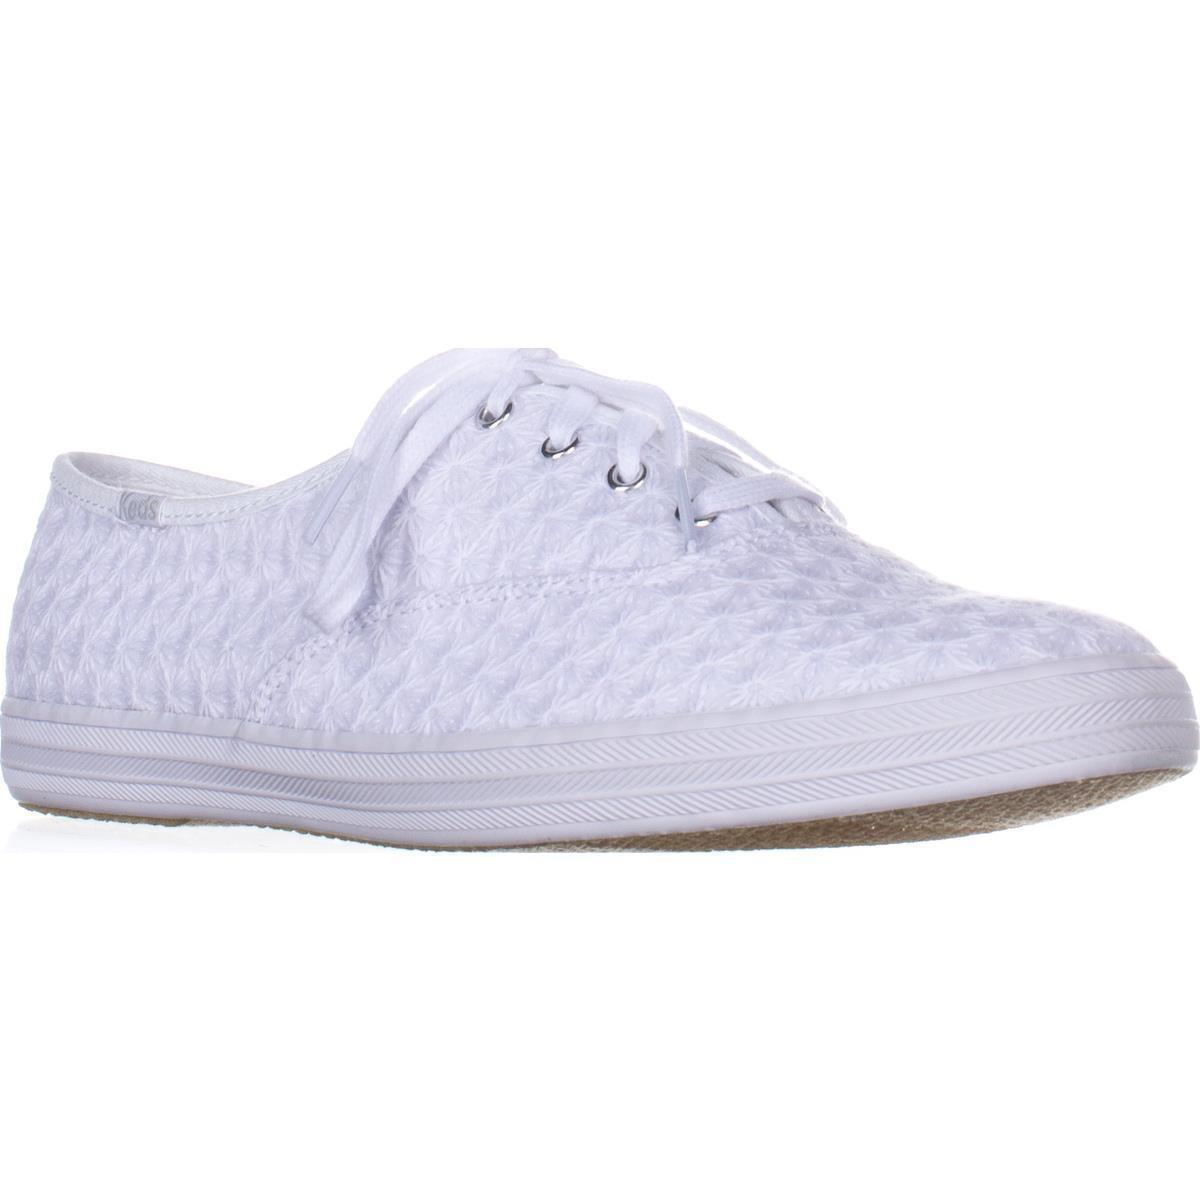 05fe69af539 Keds Champion Mini Daisy Fashion Sneakers in White - Lyst